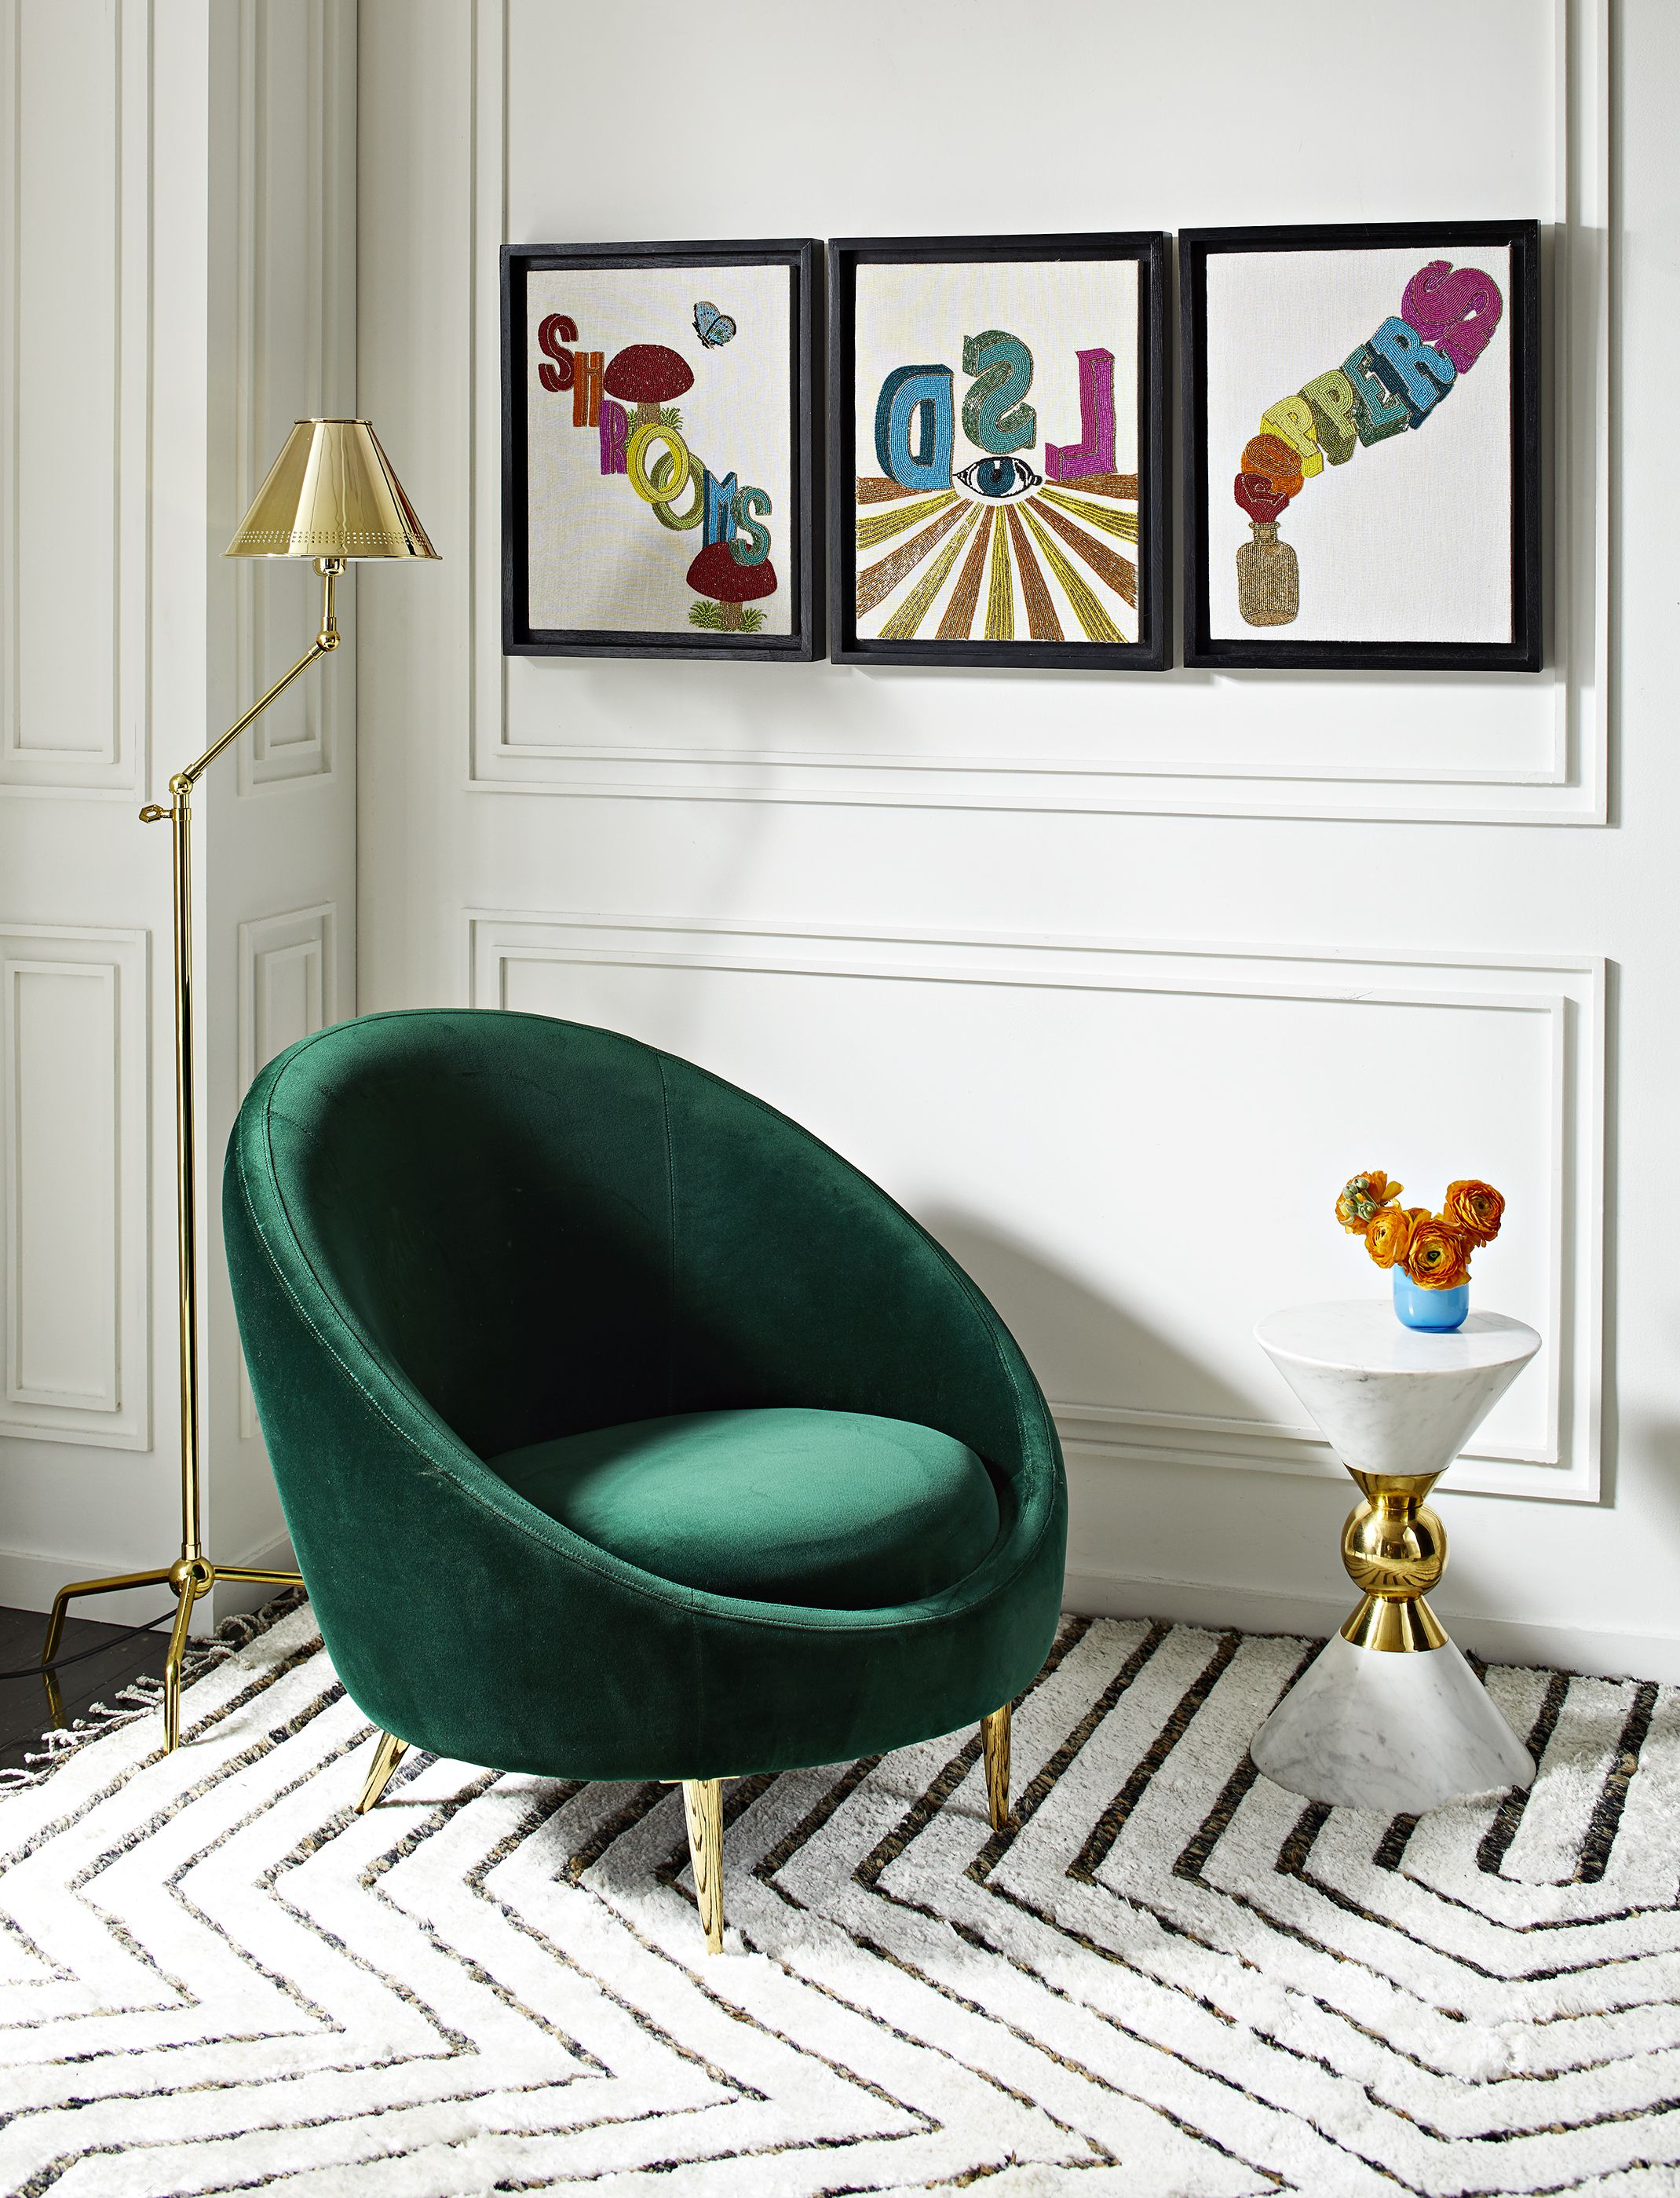 ether chair pinterest green velvet jonathan adler and parlour